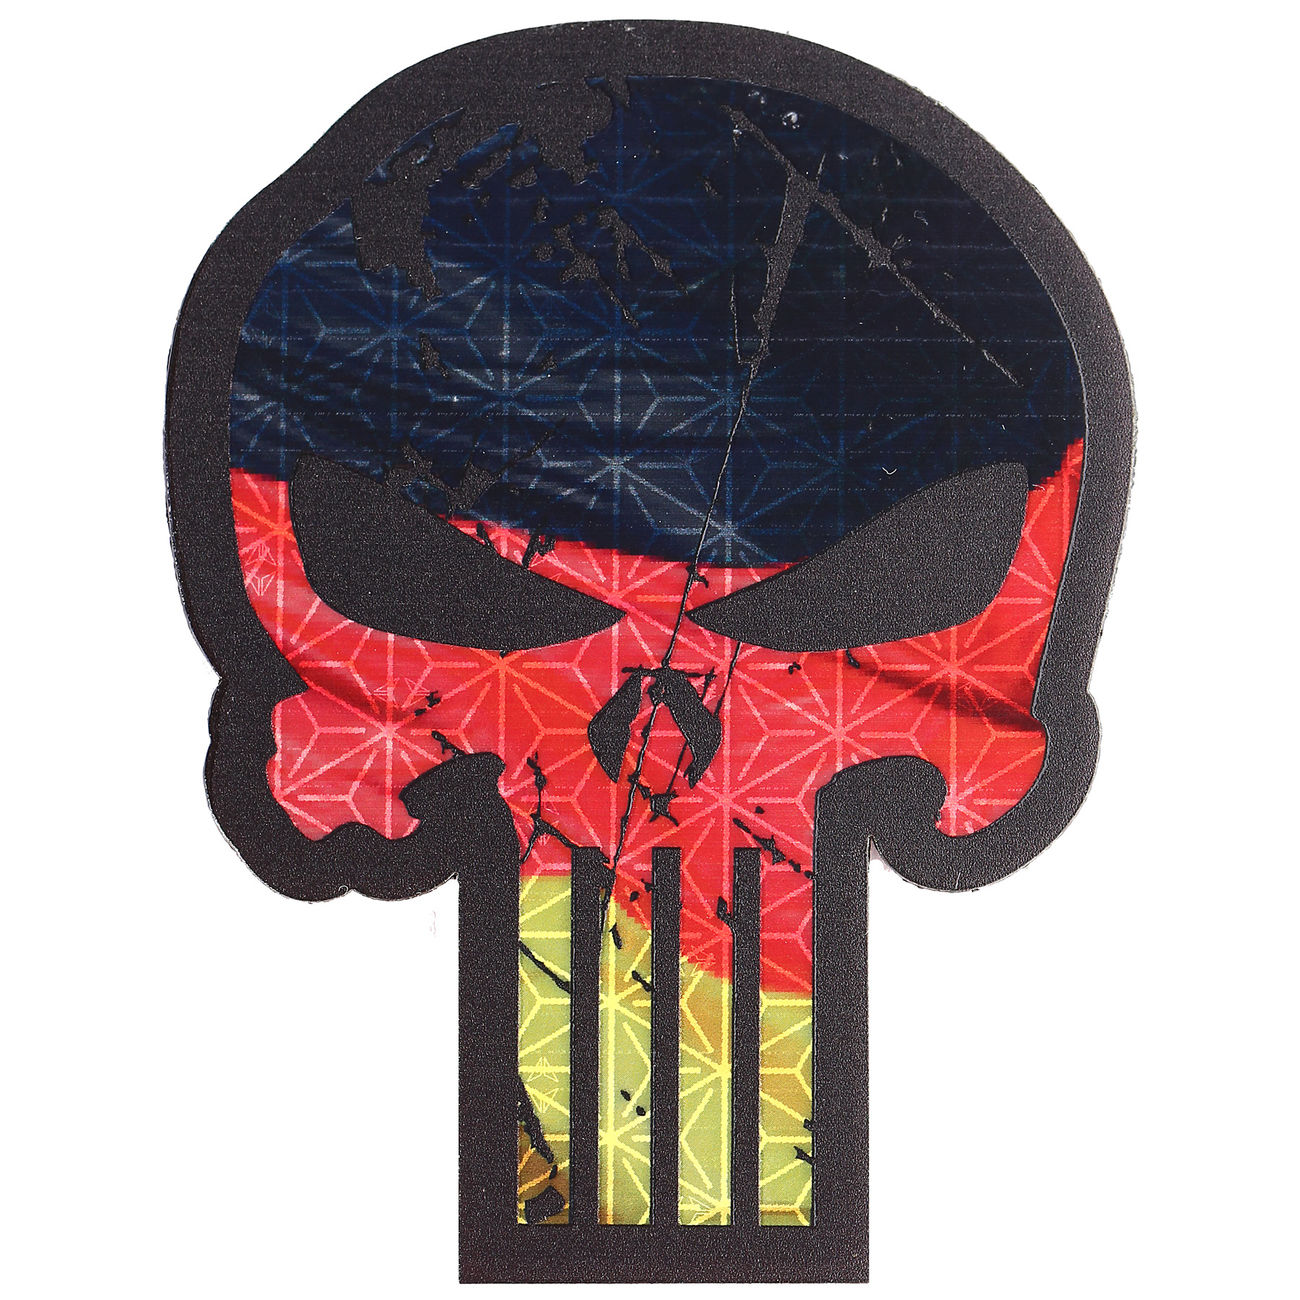 JTG 3D IR Patch BIG Punisher Patch mit Deutschlandflagge 0